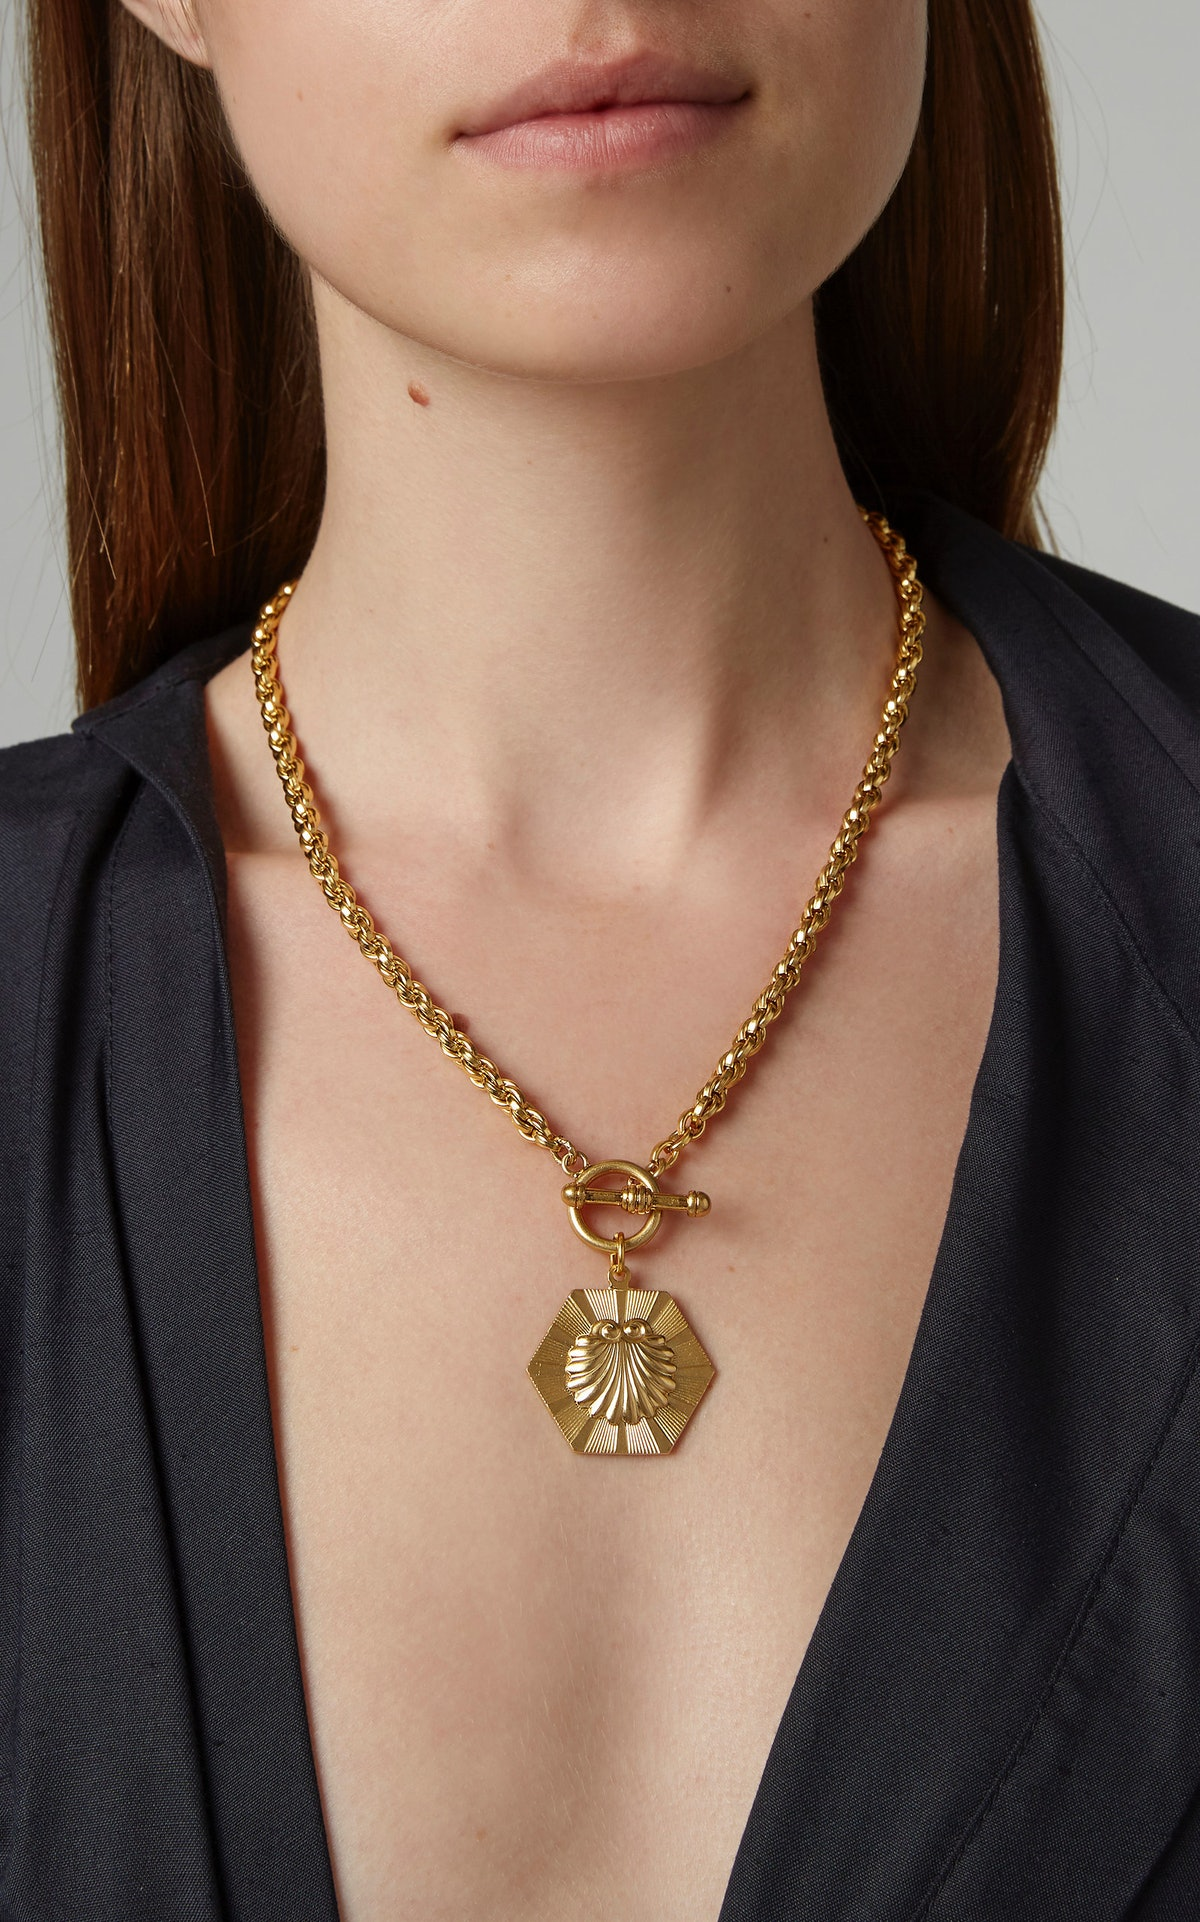 Golden Girl 24K Gold-Plated Necklace